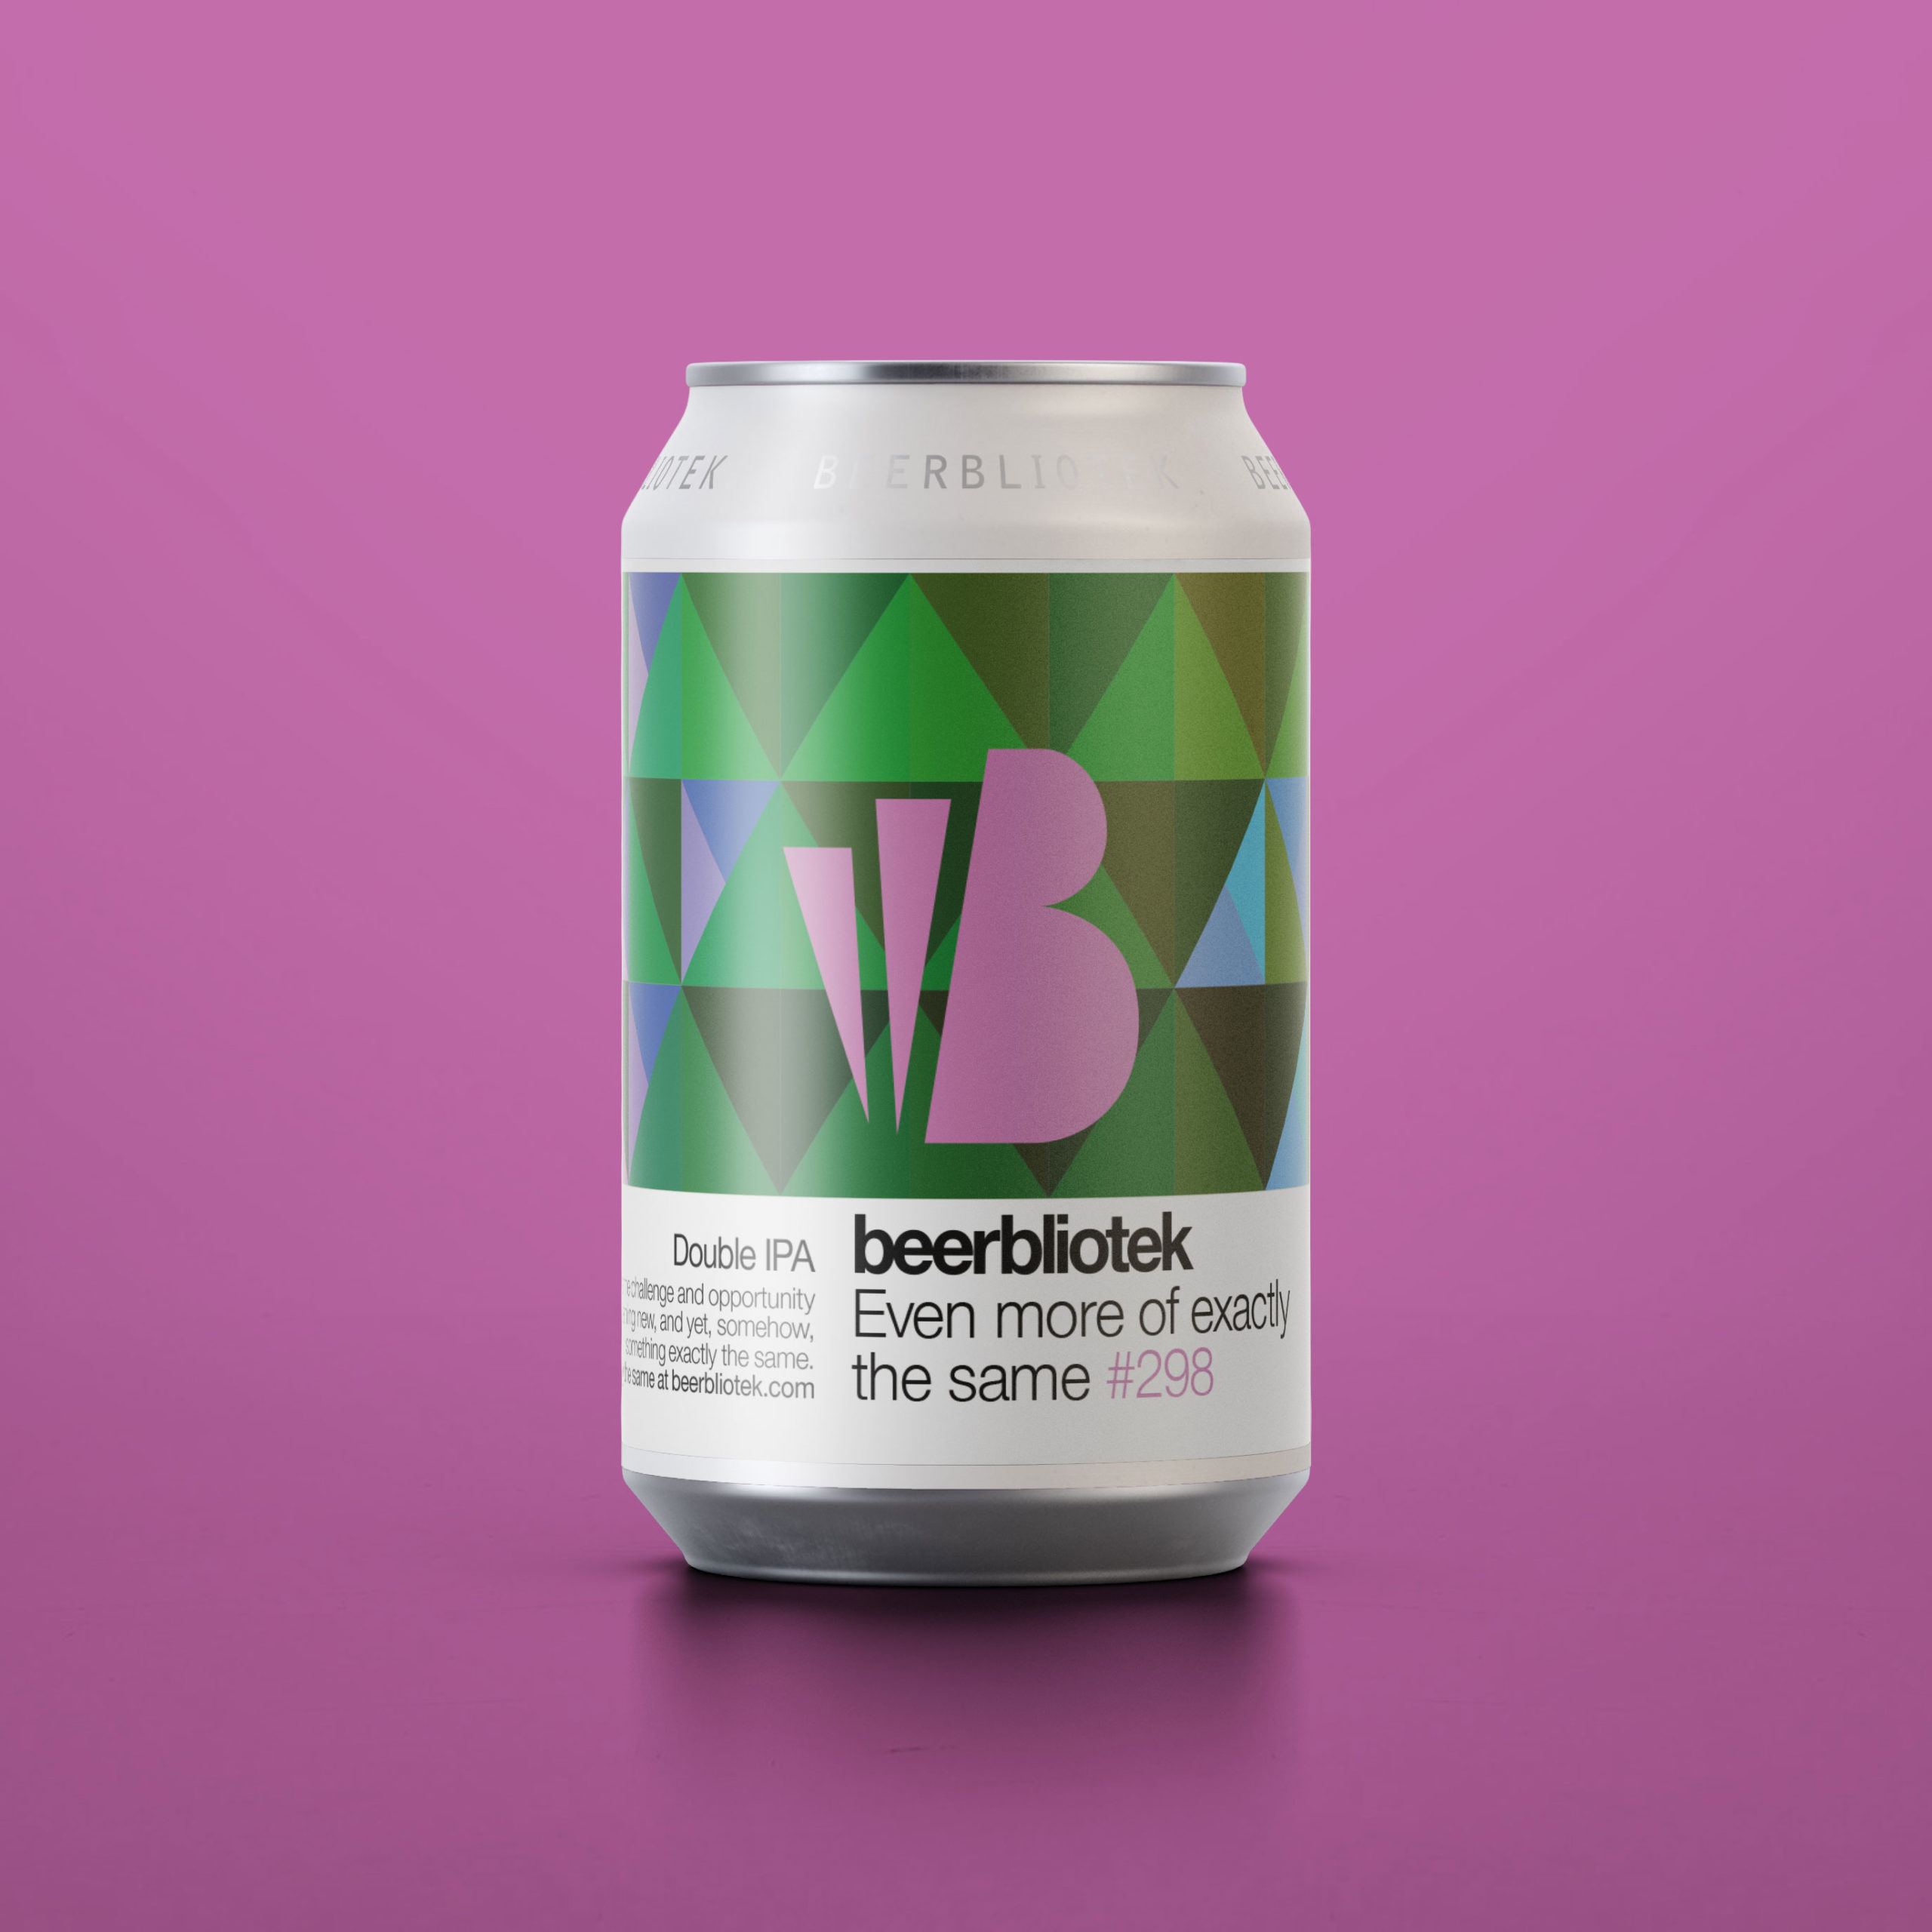 A can marketing ppackshot of a Double IPA, Even more of exactly the same, brewed in Sweden by Craft Brewery Beerbliotek.